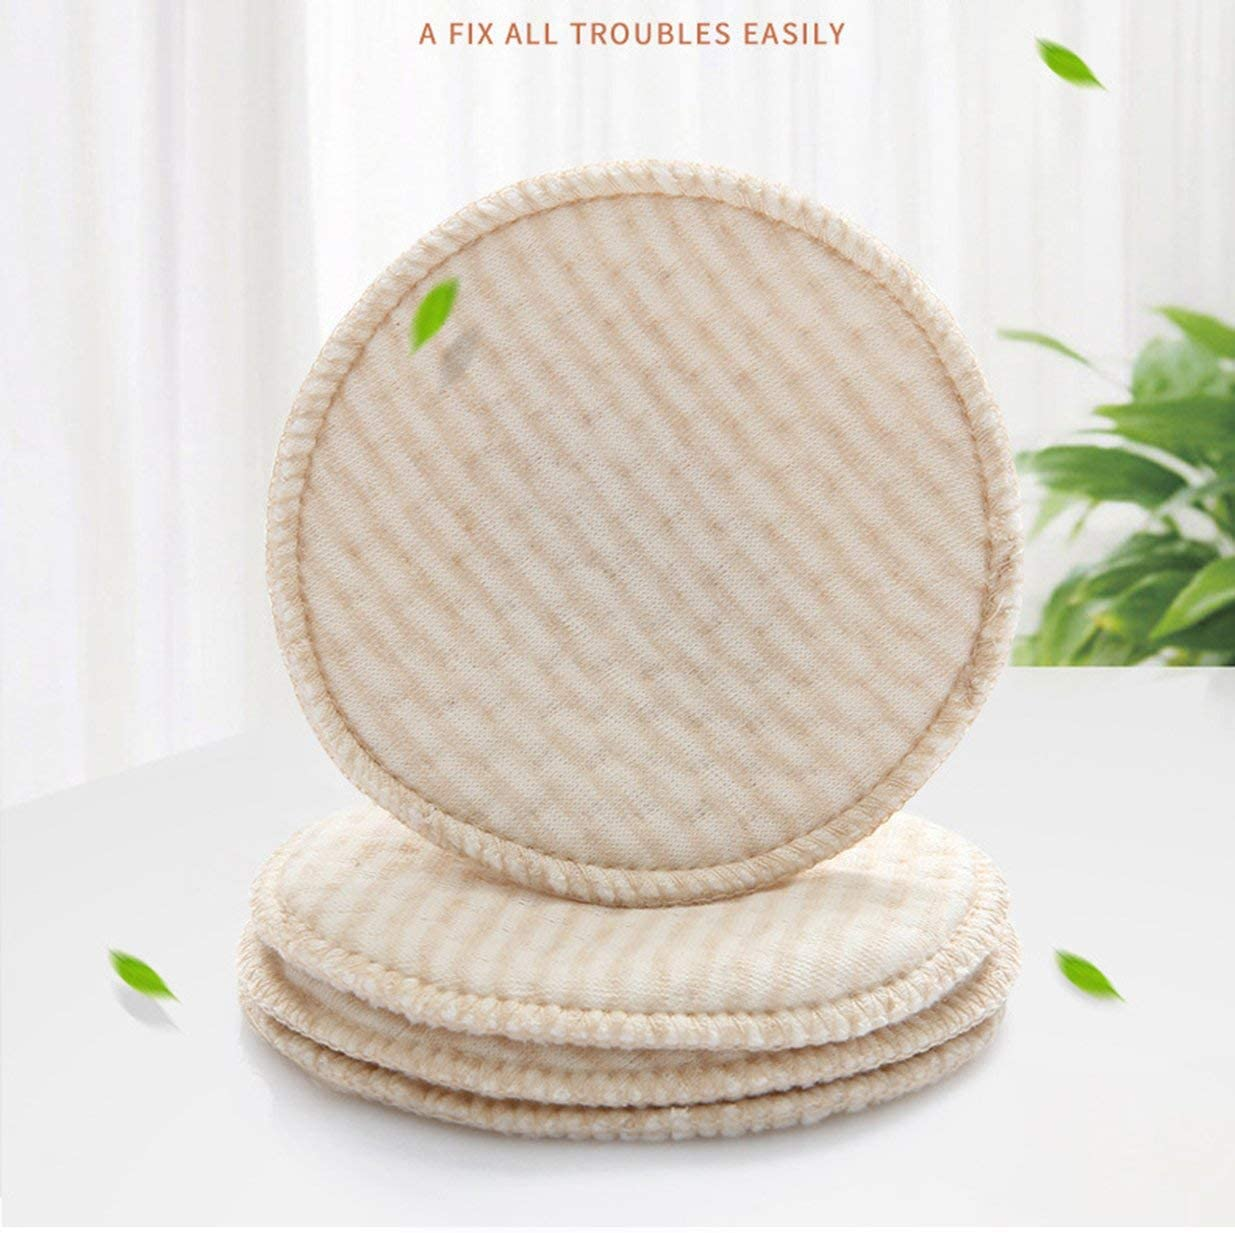 KUR 4PCS Non-Woven Cotton Collection Nursing Breast Pads Breastfeeding Absorbent Cover Stay Dry Cloth Pad Coffee